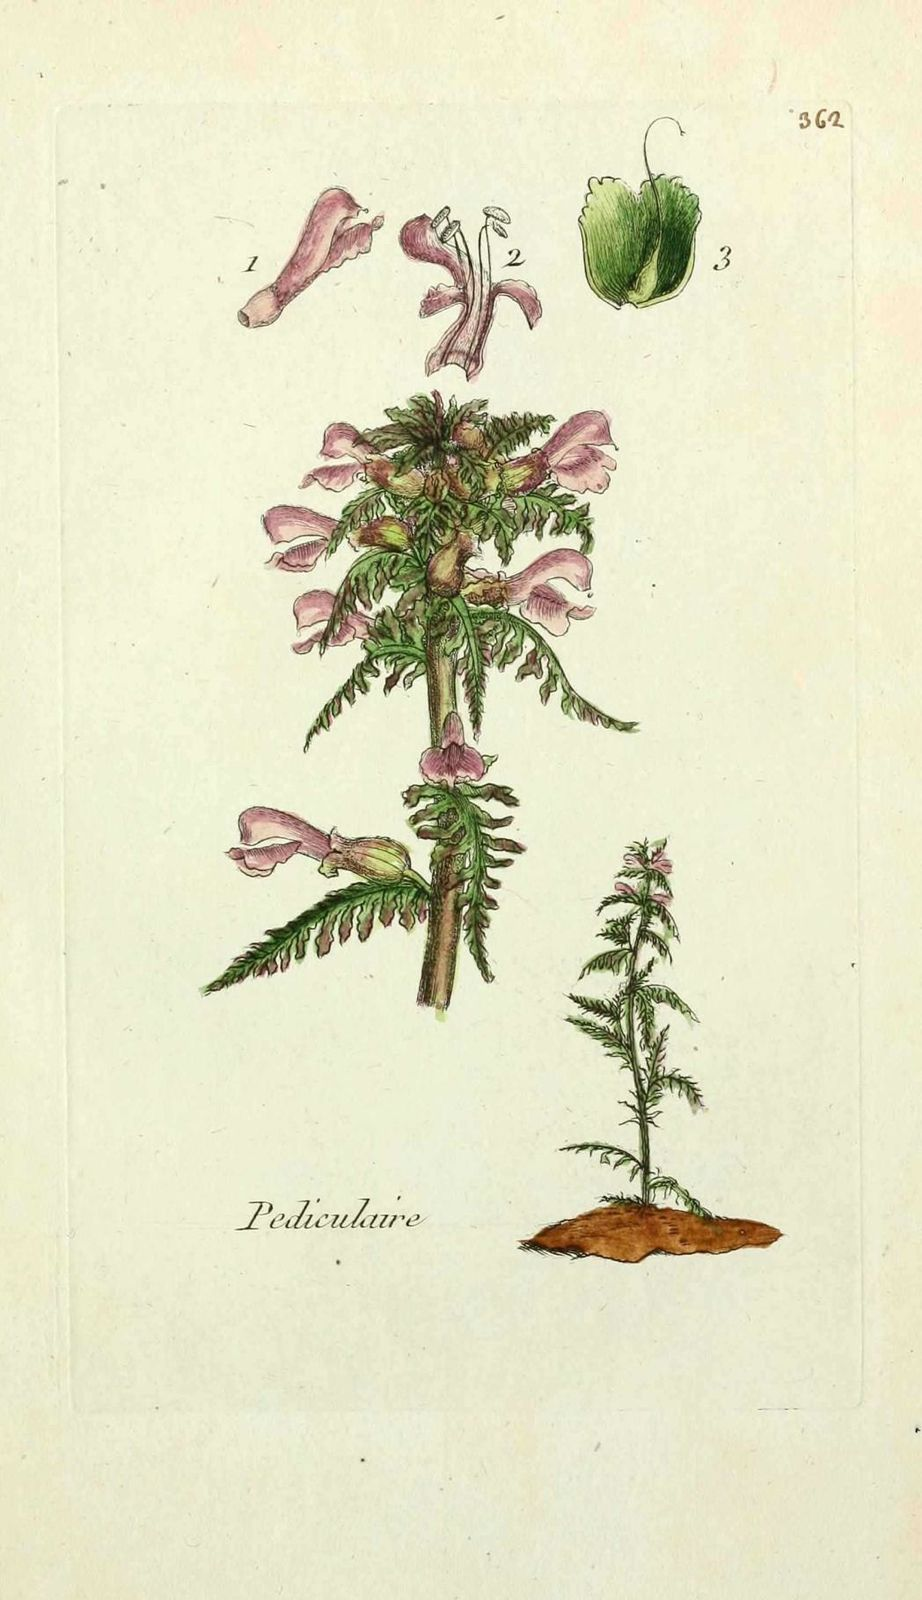 pediculaire des marais - pedicularis palustris